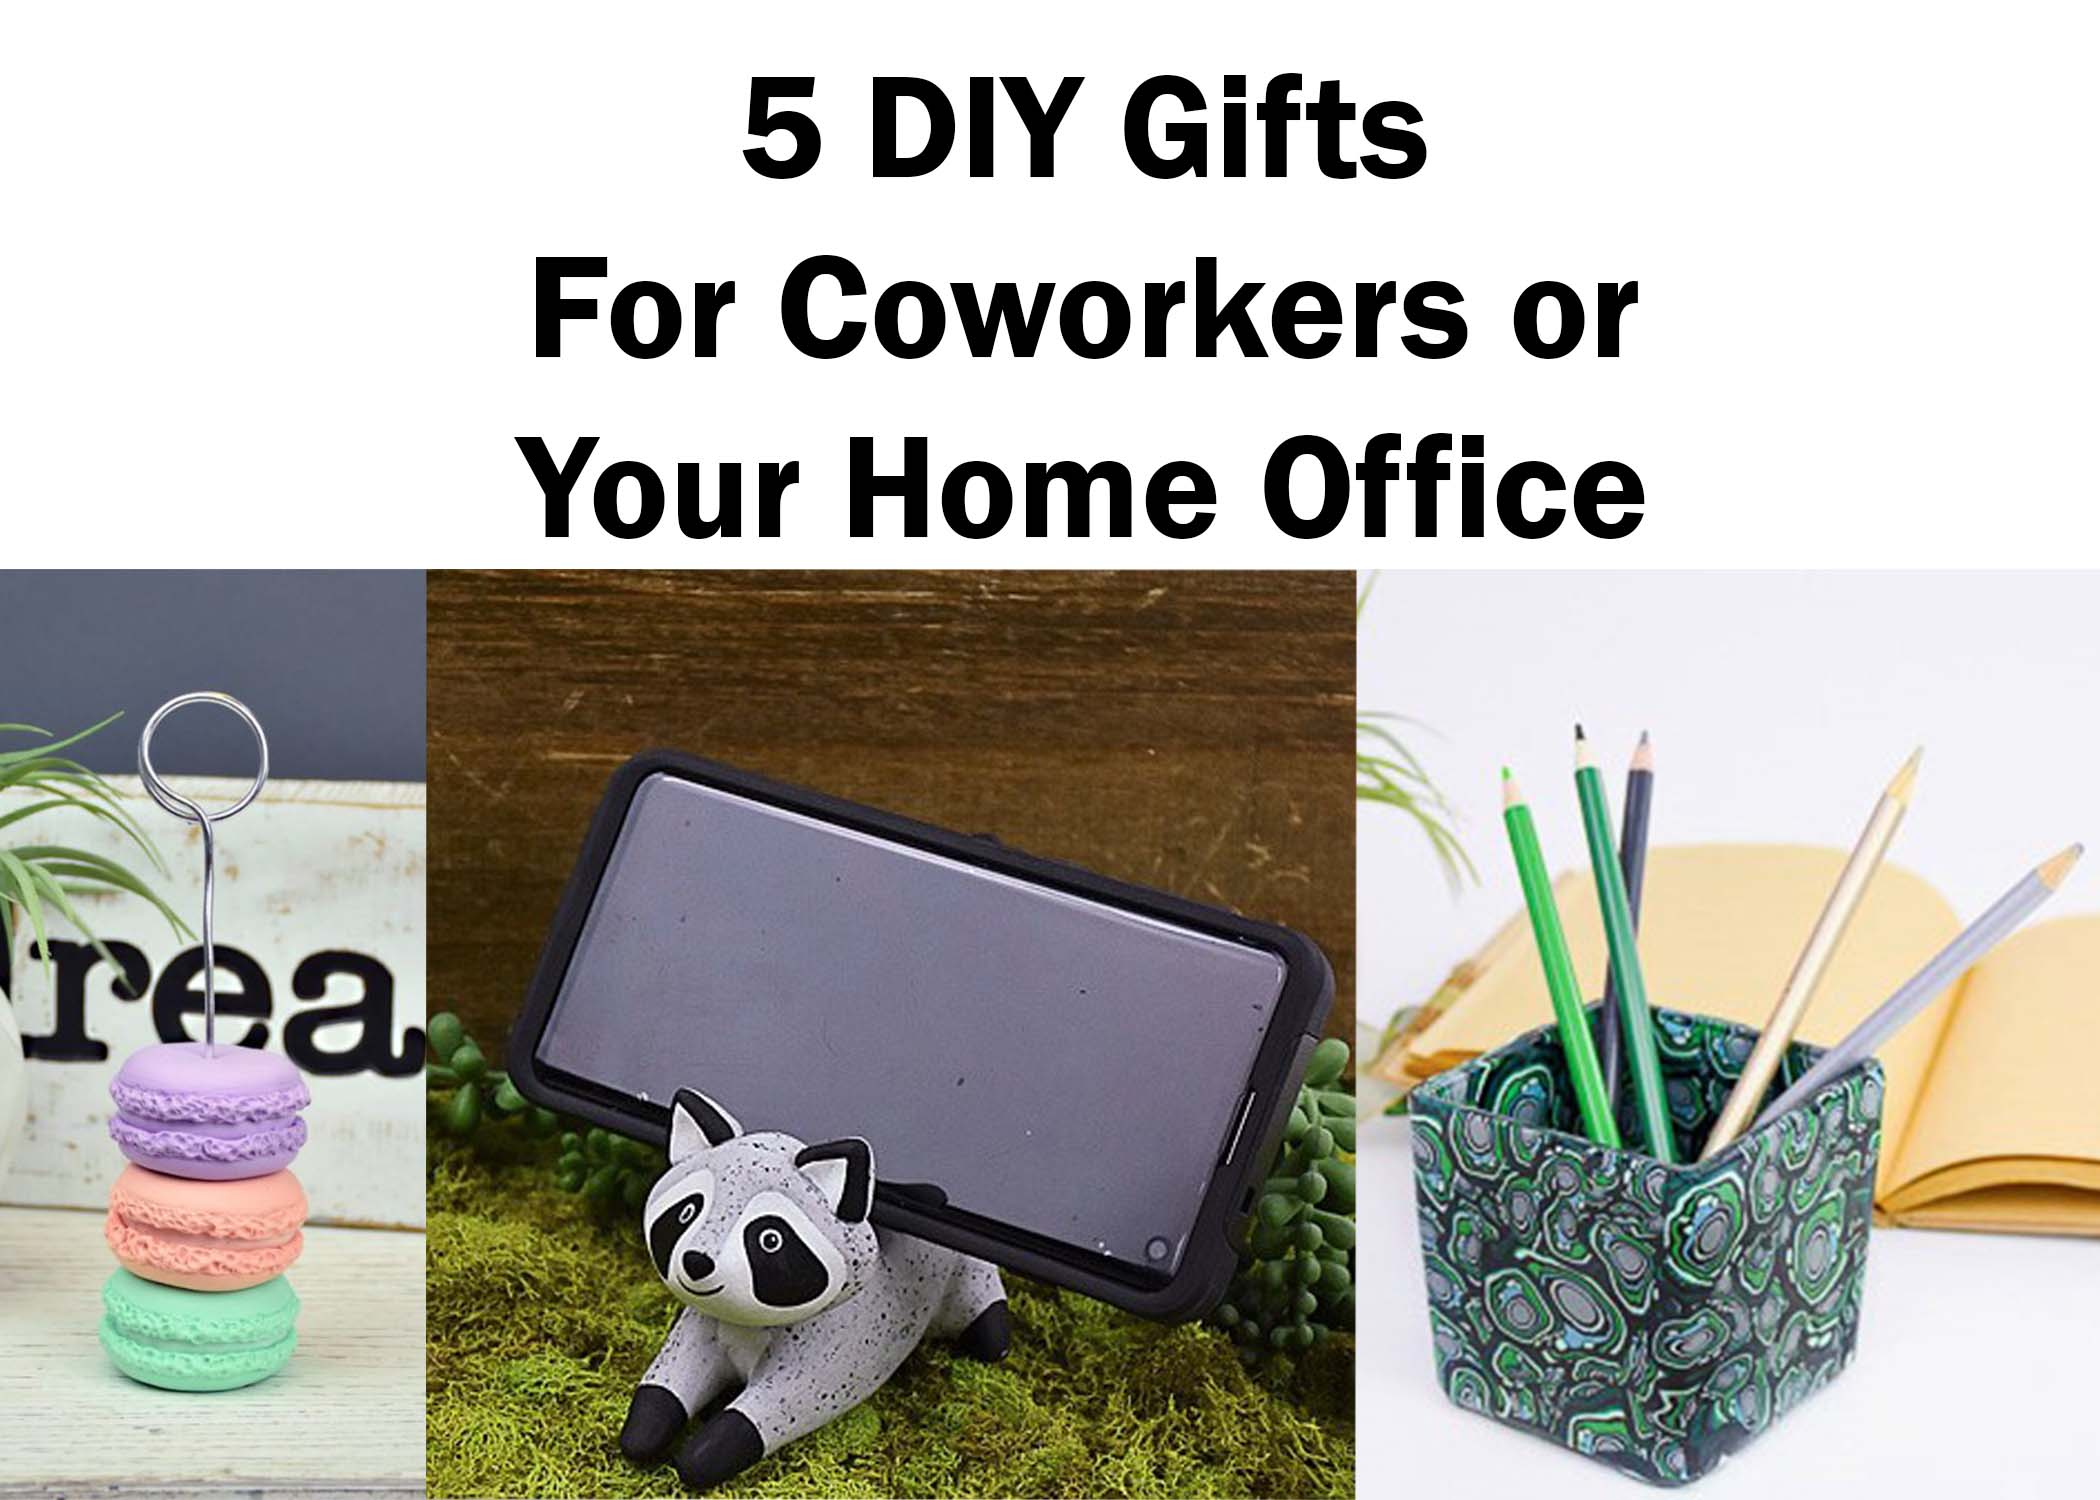 5 DIY Gifts for Brightening Your Office Space